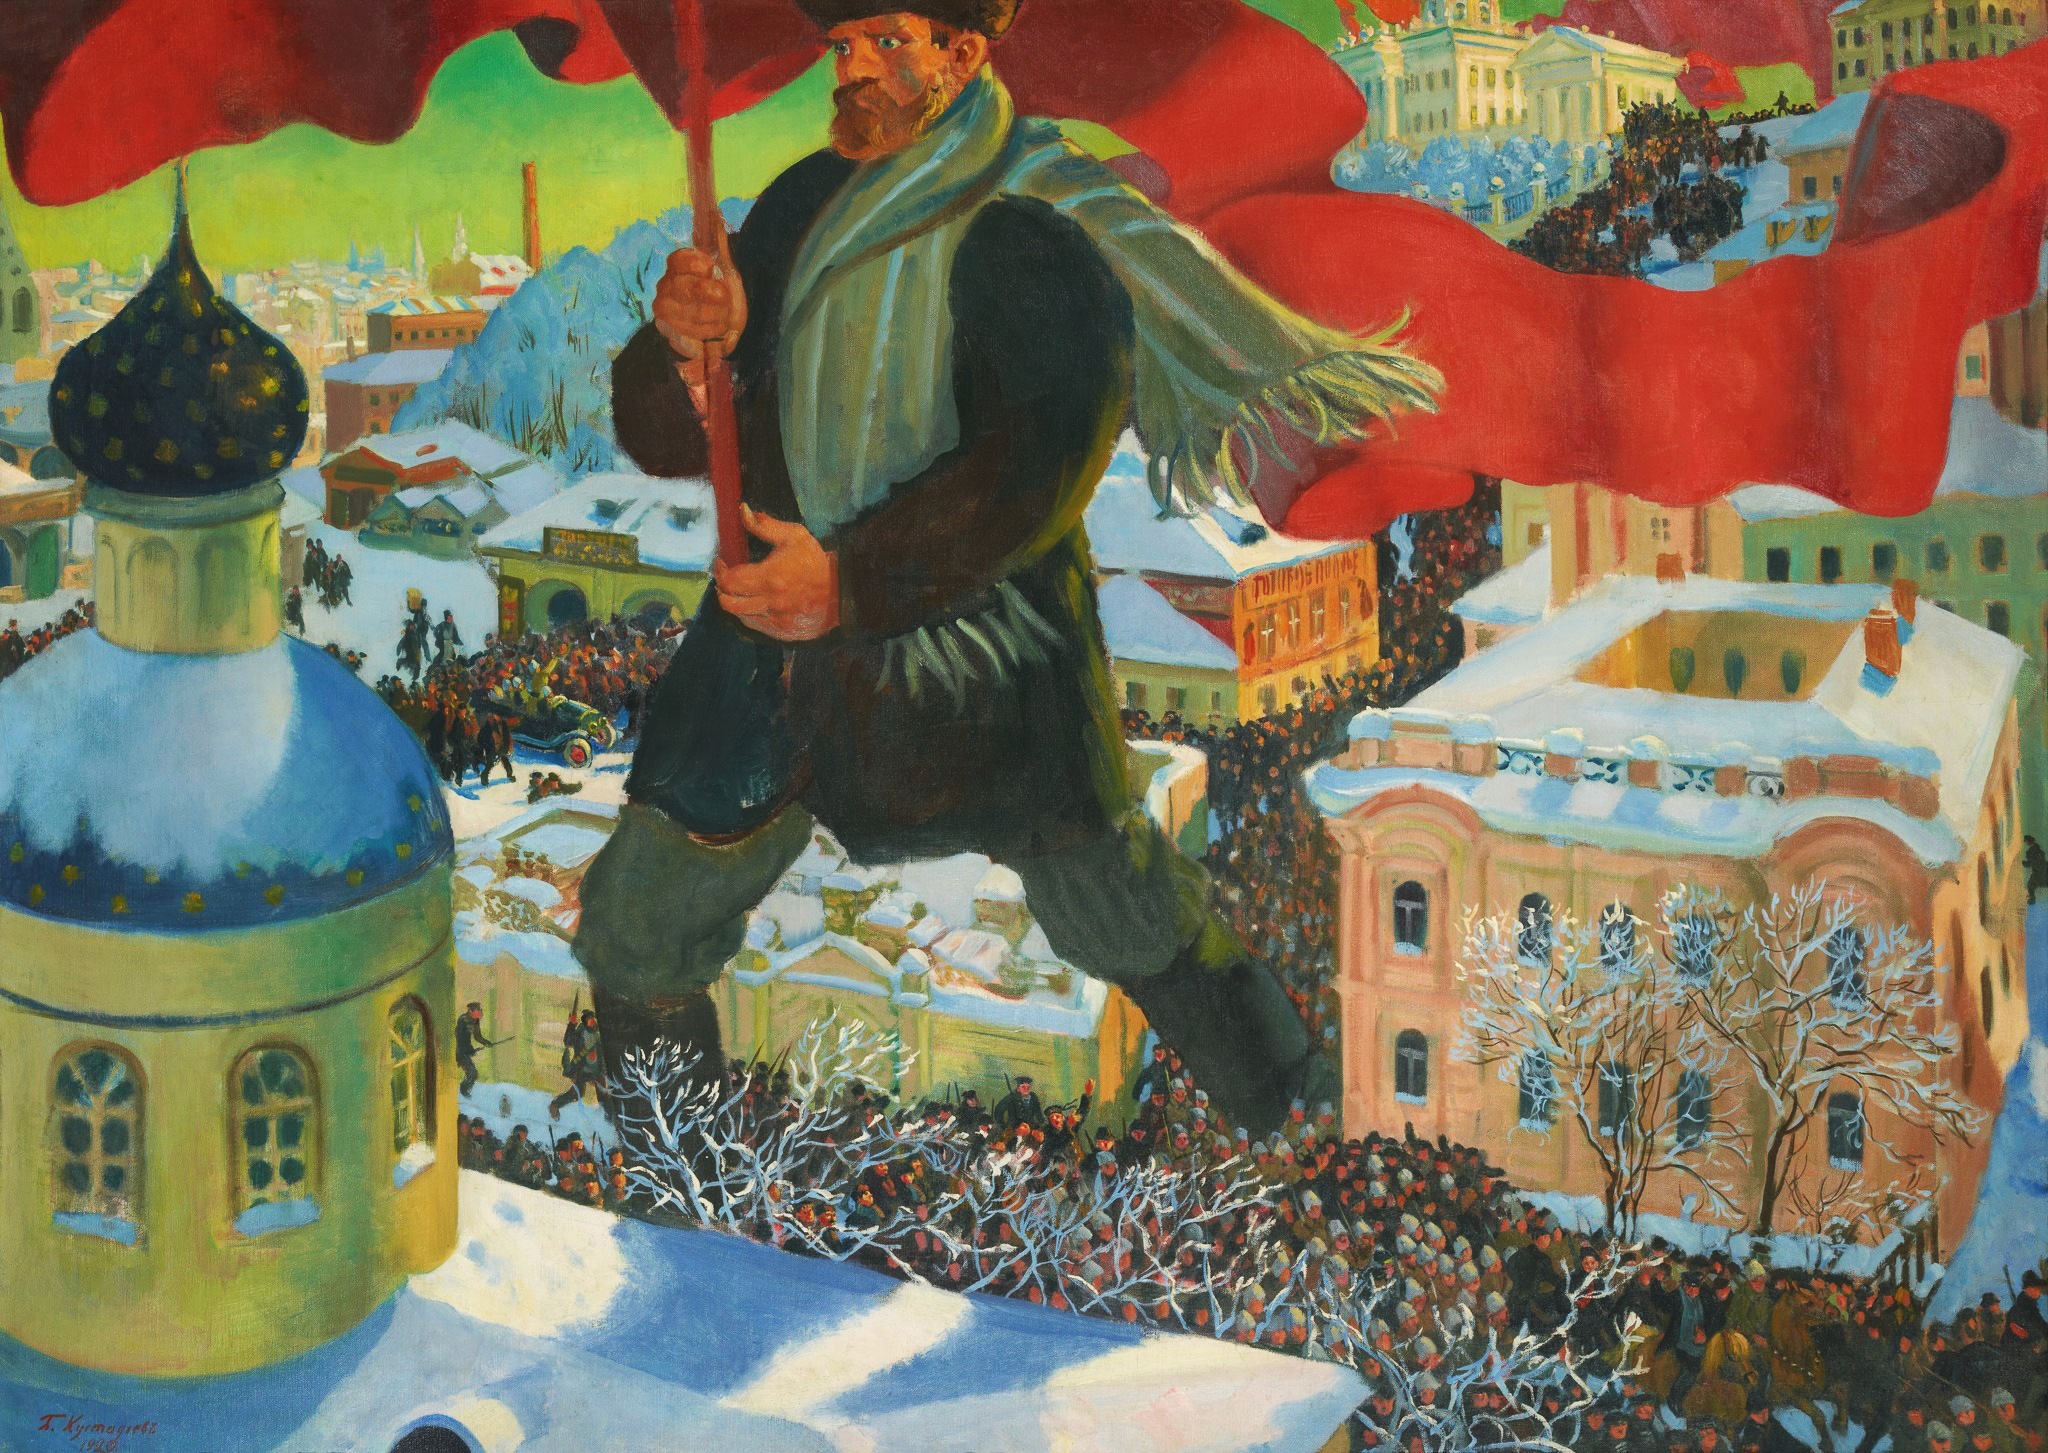 success of bolsheviks in russian revolution In the process, i tried to clarify the relationship between these two aspects of the revolution and the eventual bolshevik success a main theme of my book is that the bolsheviks won out in the struggle for power in 1917 petrograd in large part because their chief goals (as the masses and most party members.